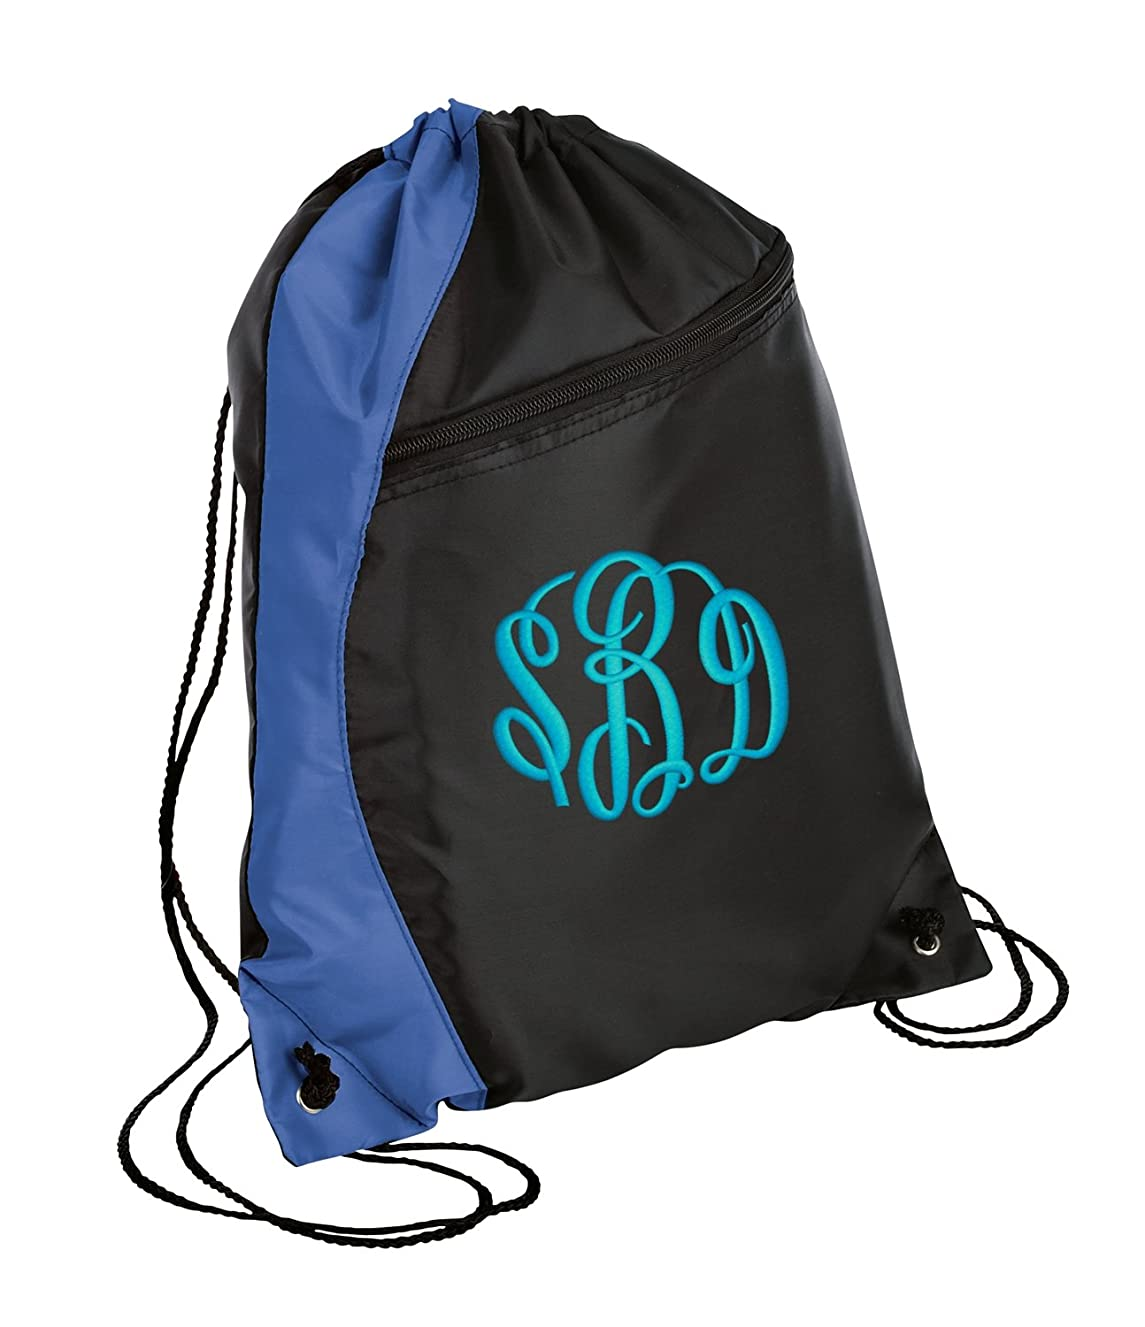 All about me company Colorblock Cinch Bag | Personalized Monogram/Name Sackpack Bag (Royal/Black)